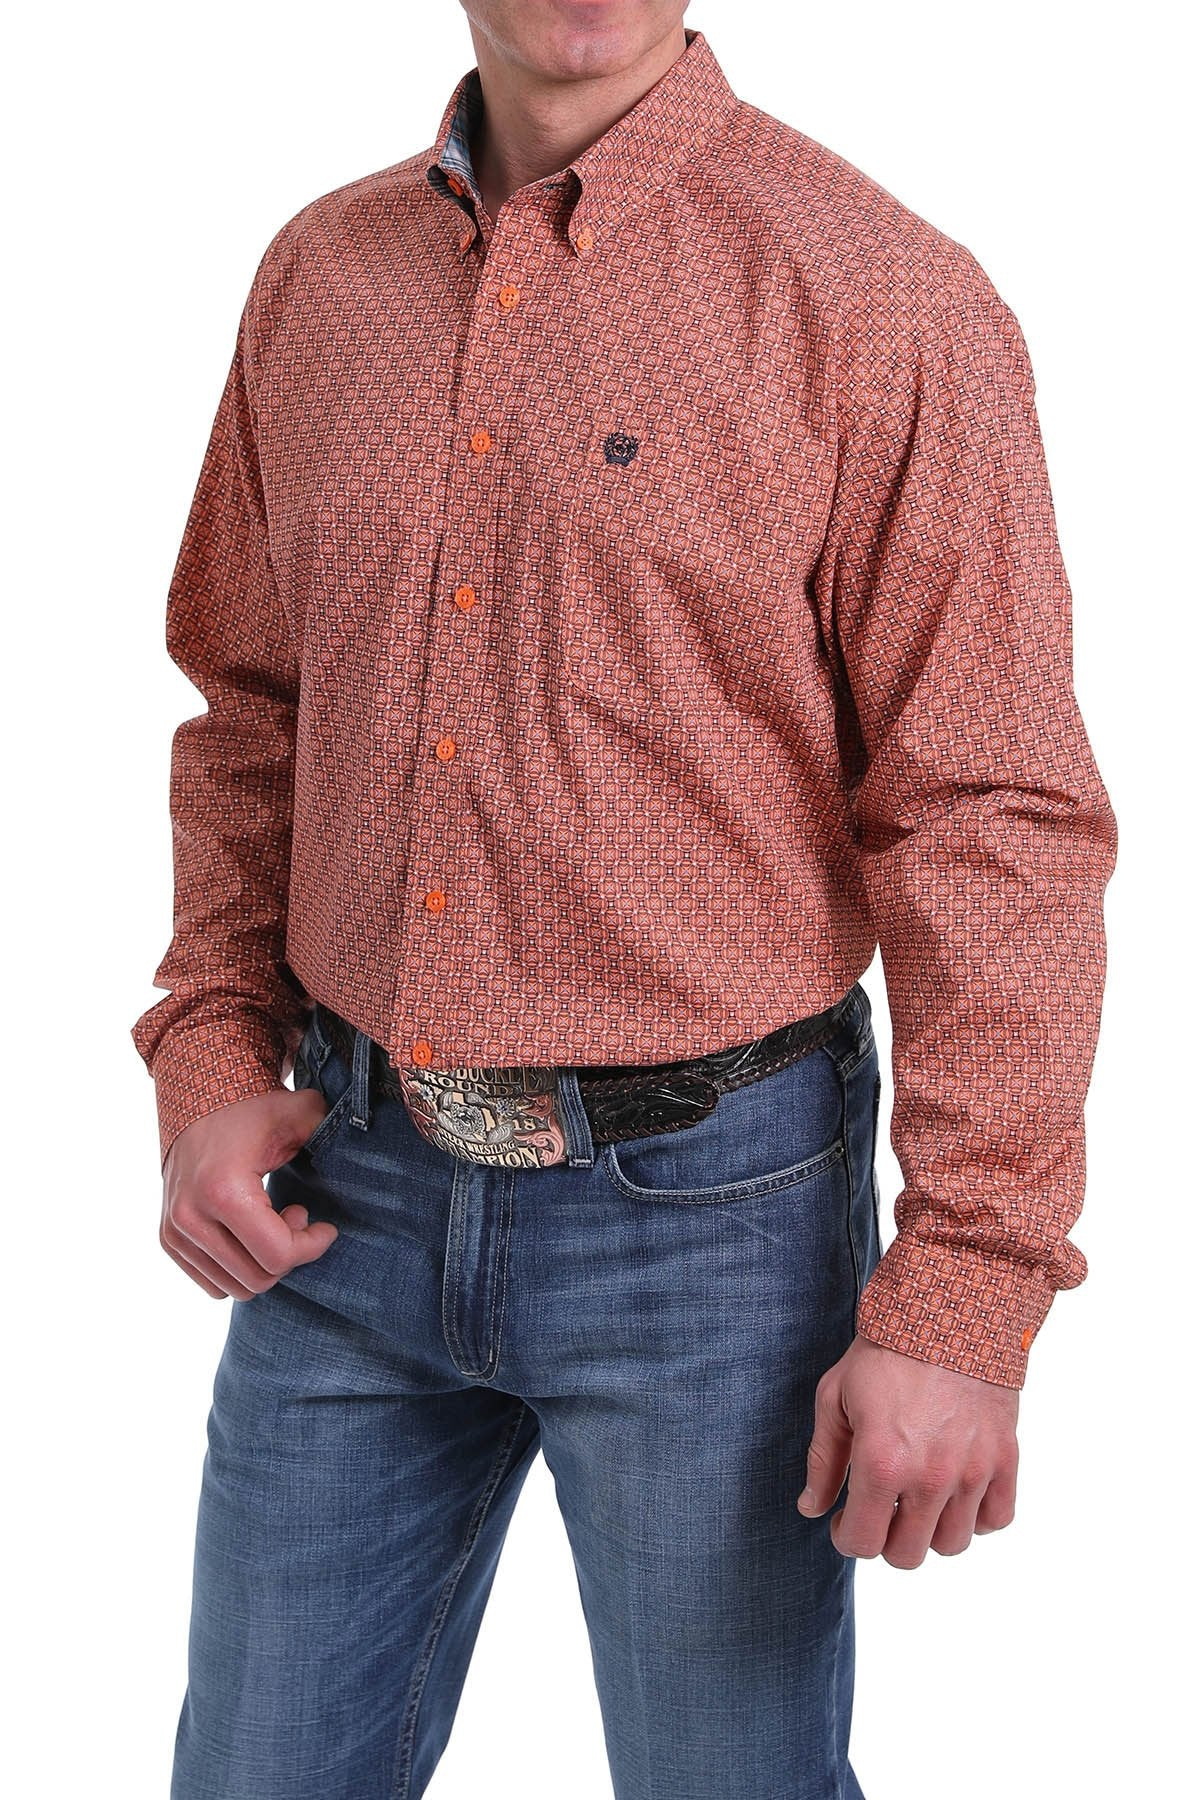 MENS ORANGE PRINT LONG SLEEVE SHIRT